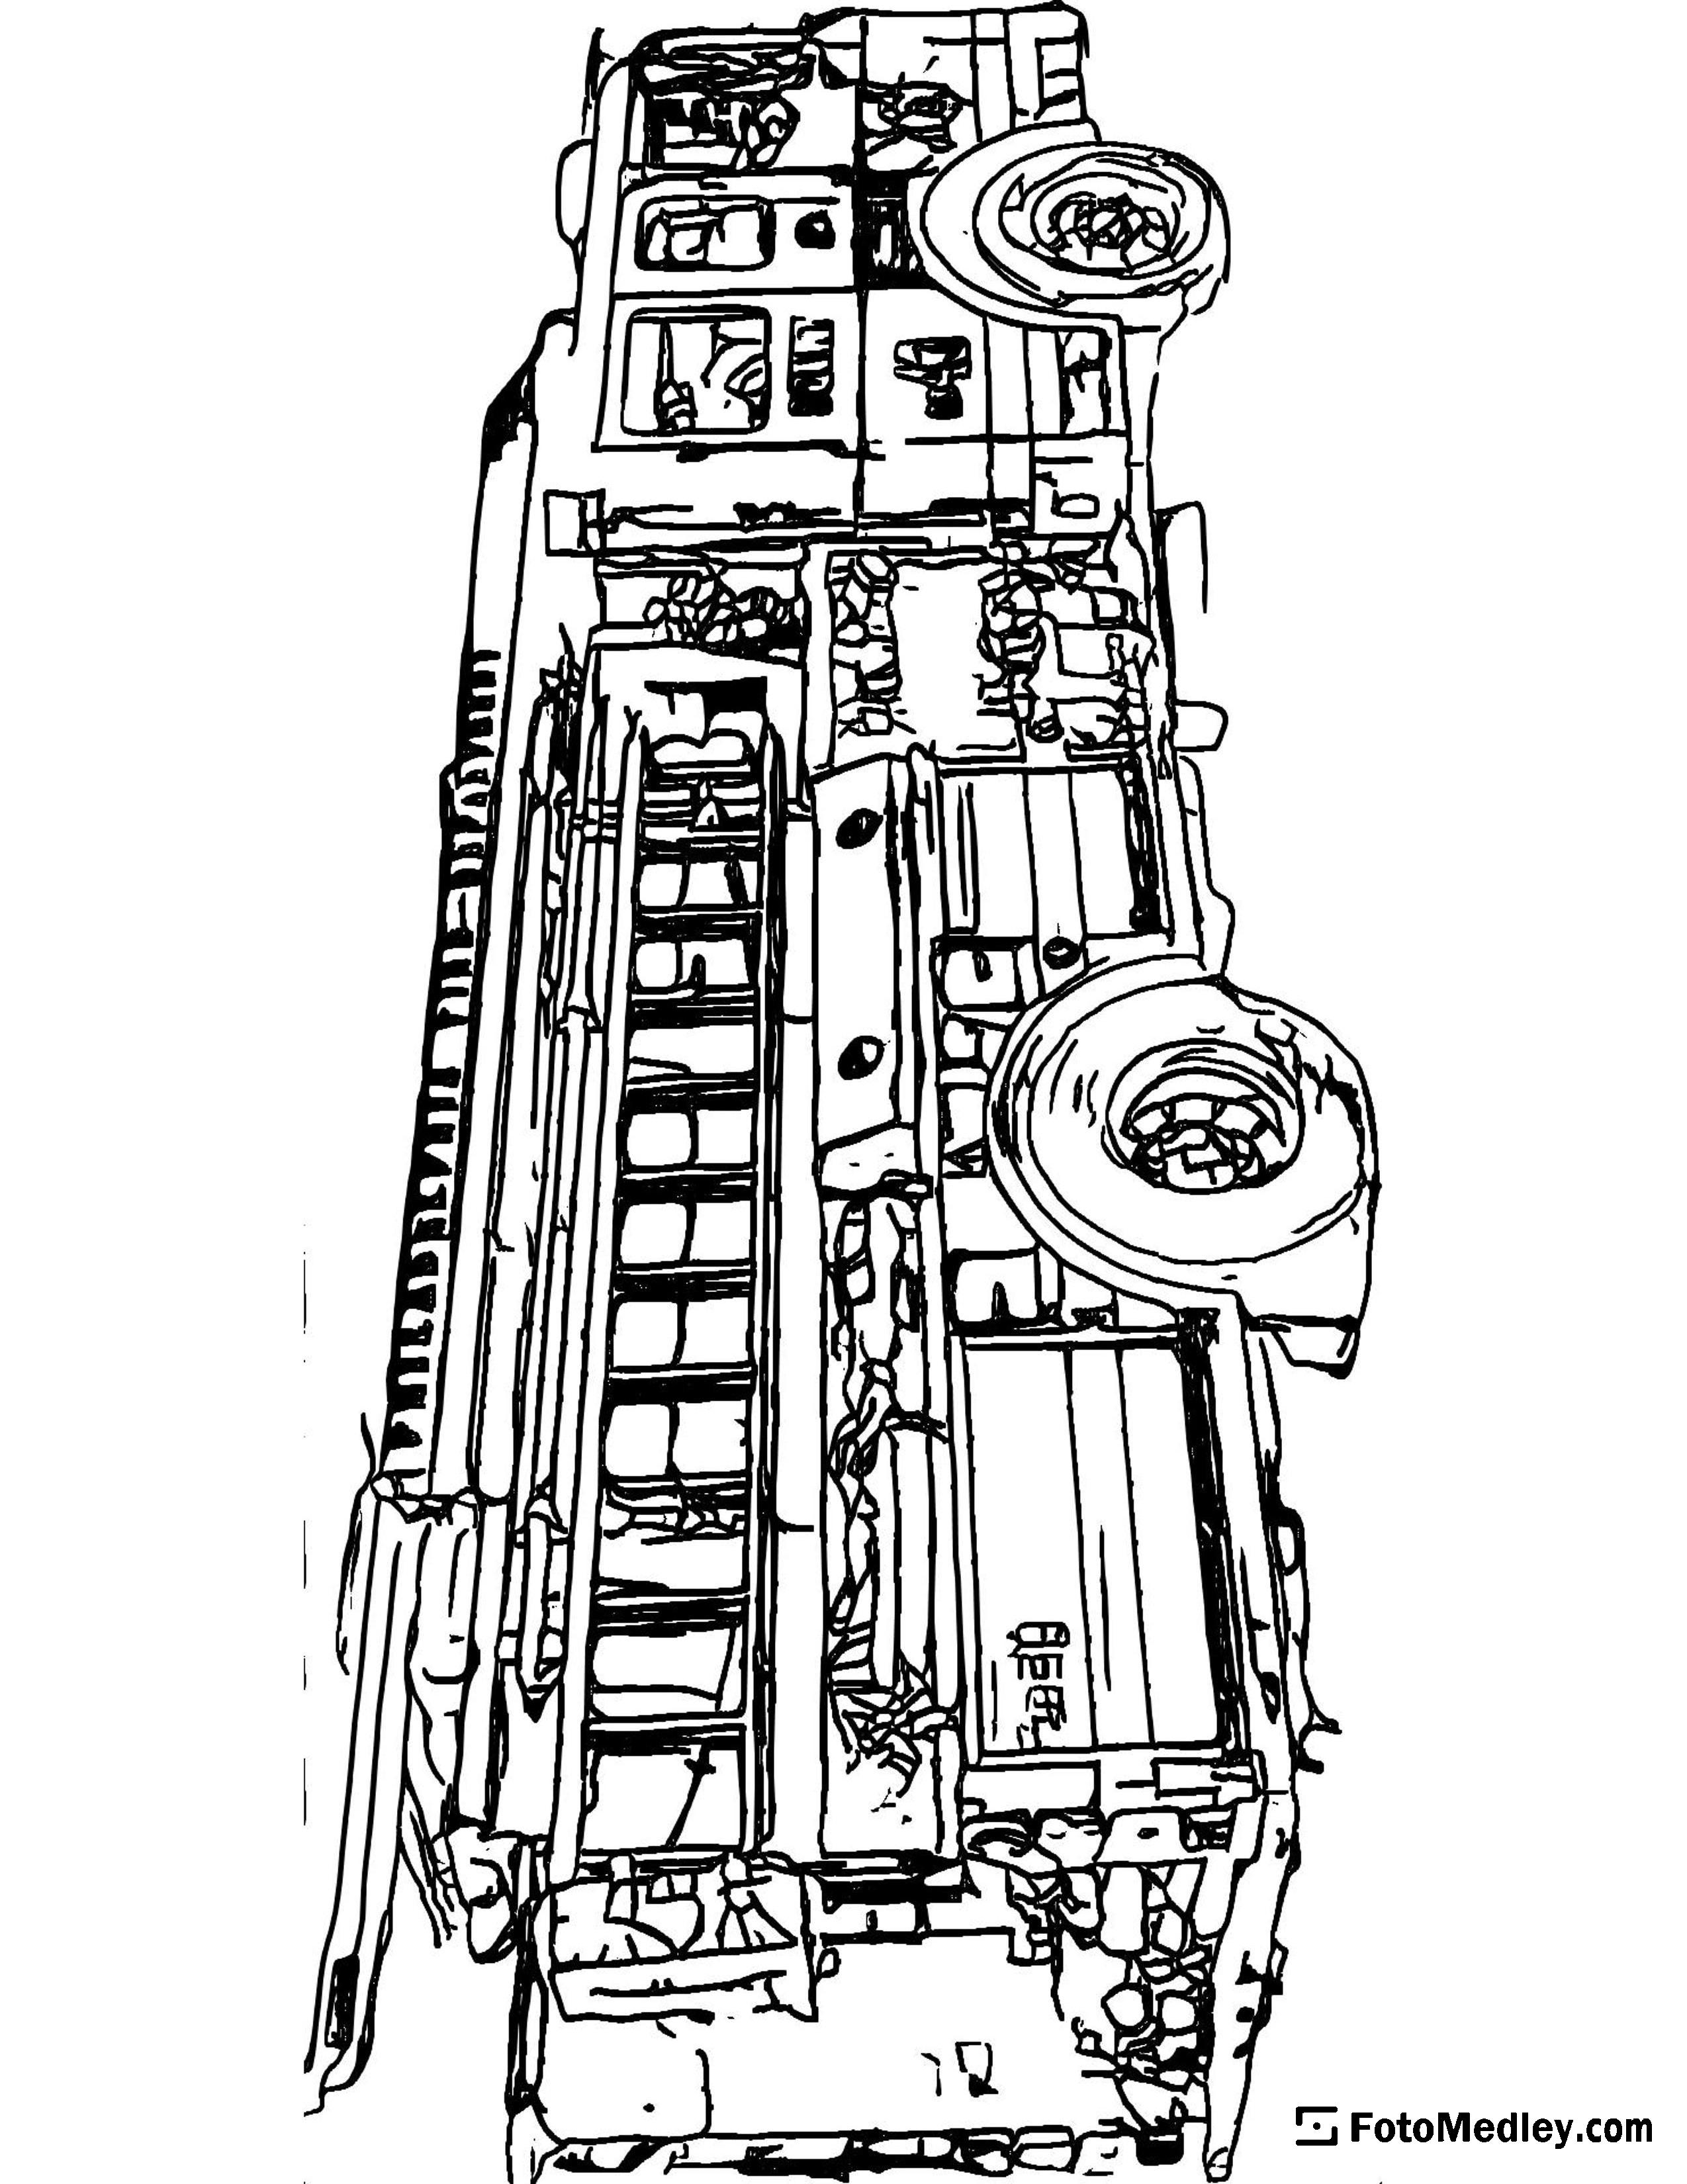 Fun free coloring page of fire truck